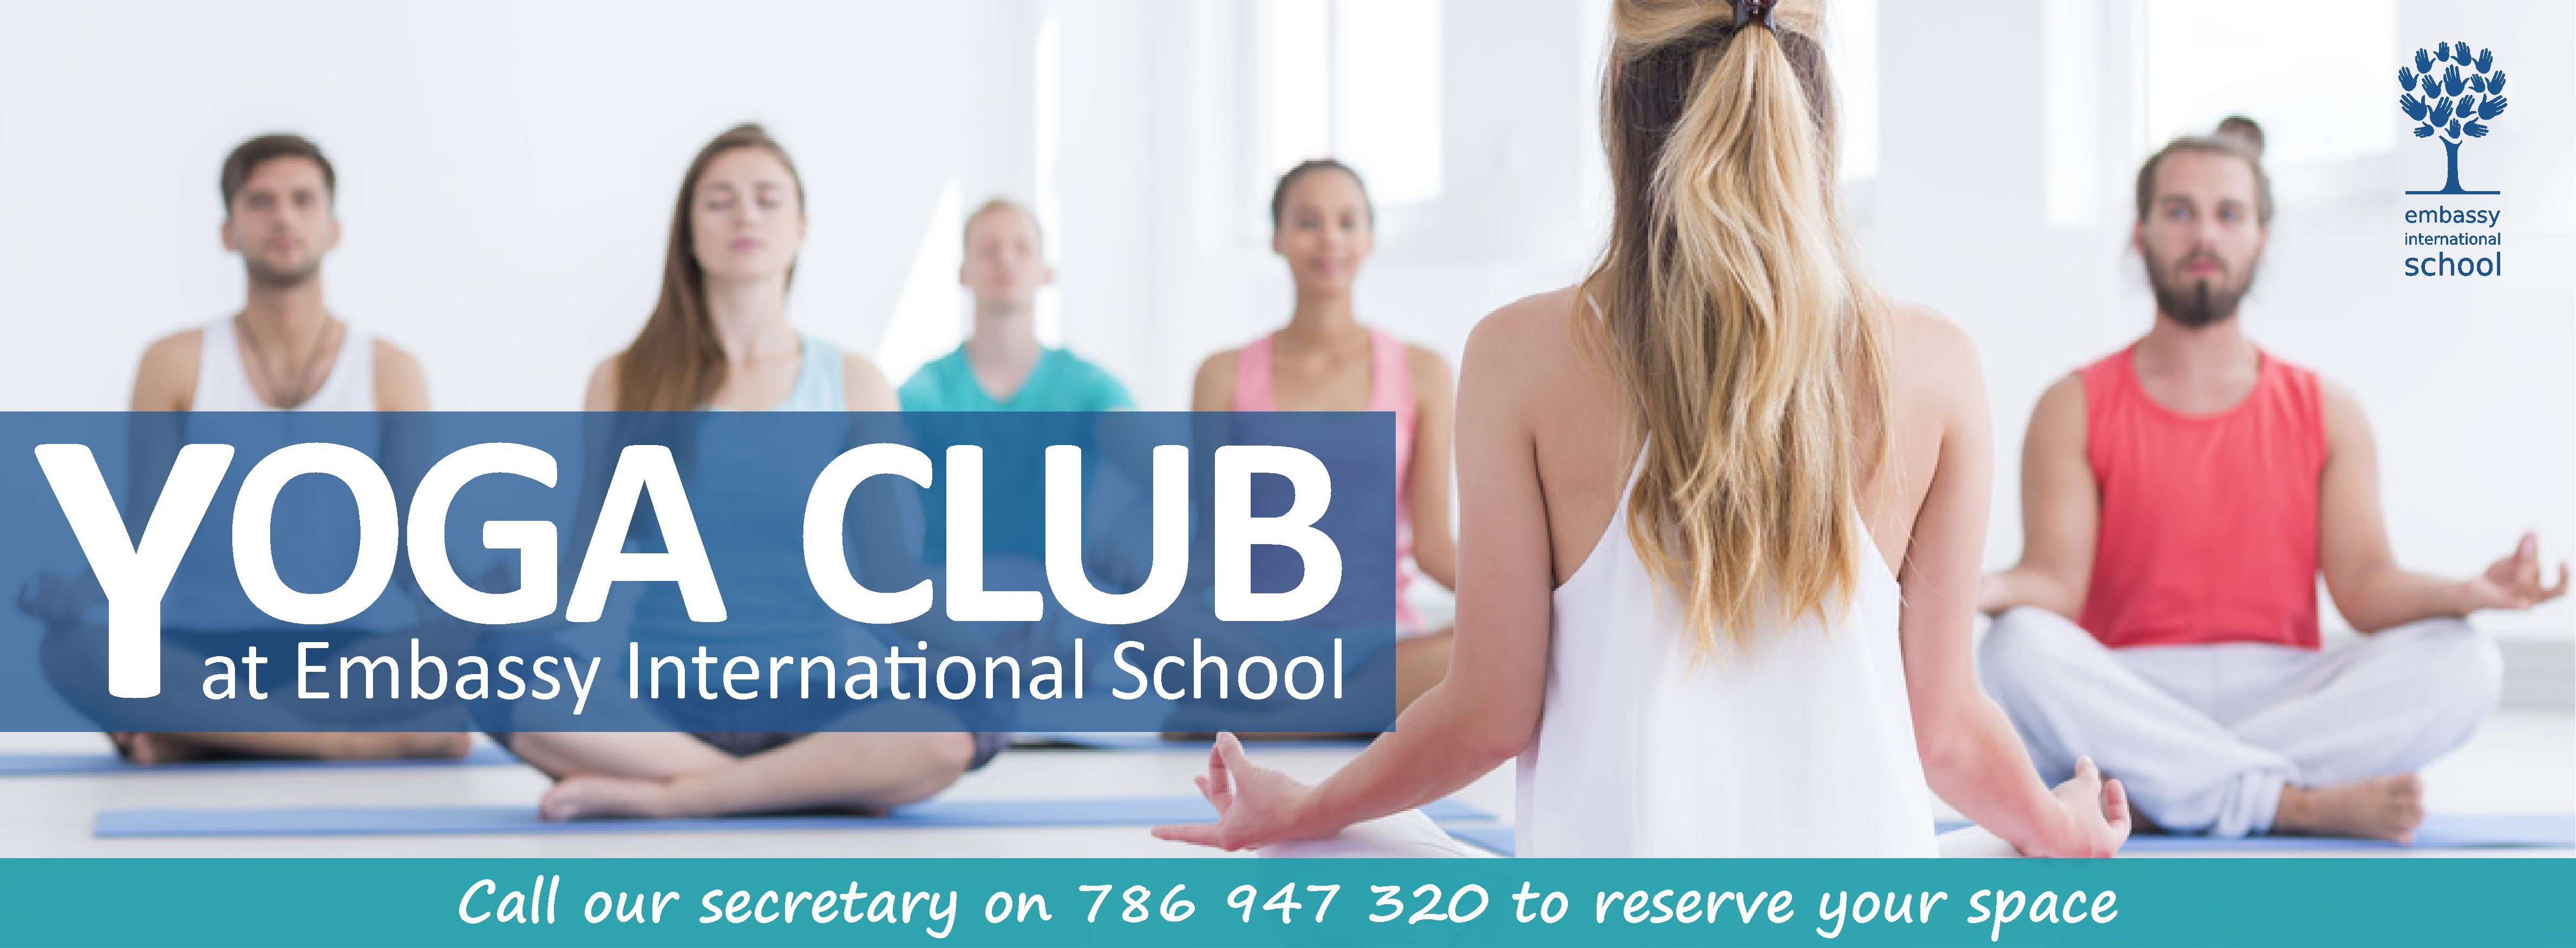 embassy-international-school-yoga-club